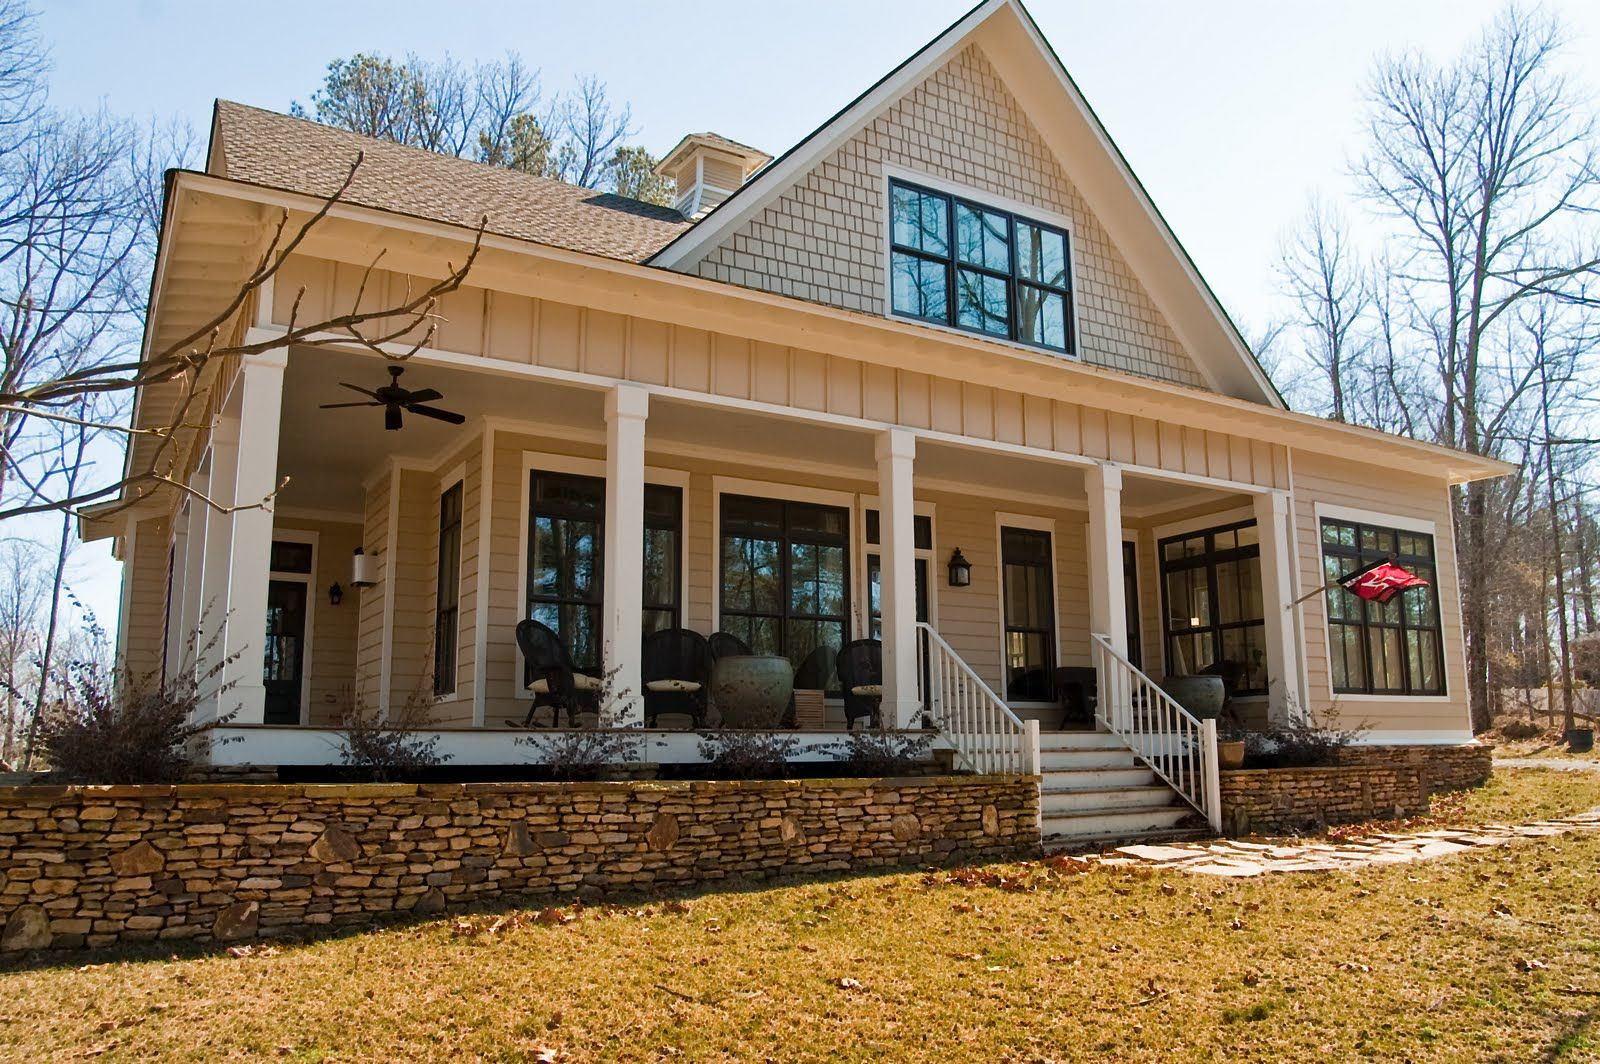 20 homes with beautiful wrap around porches